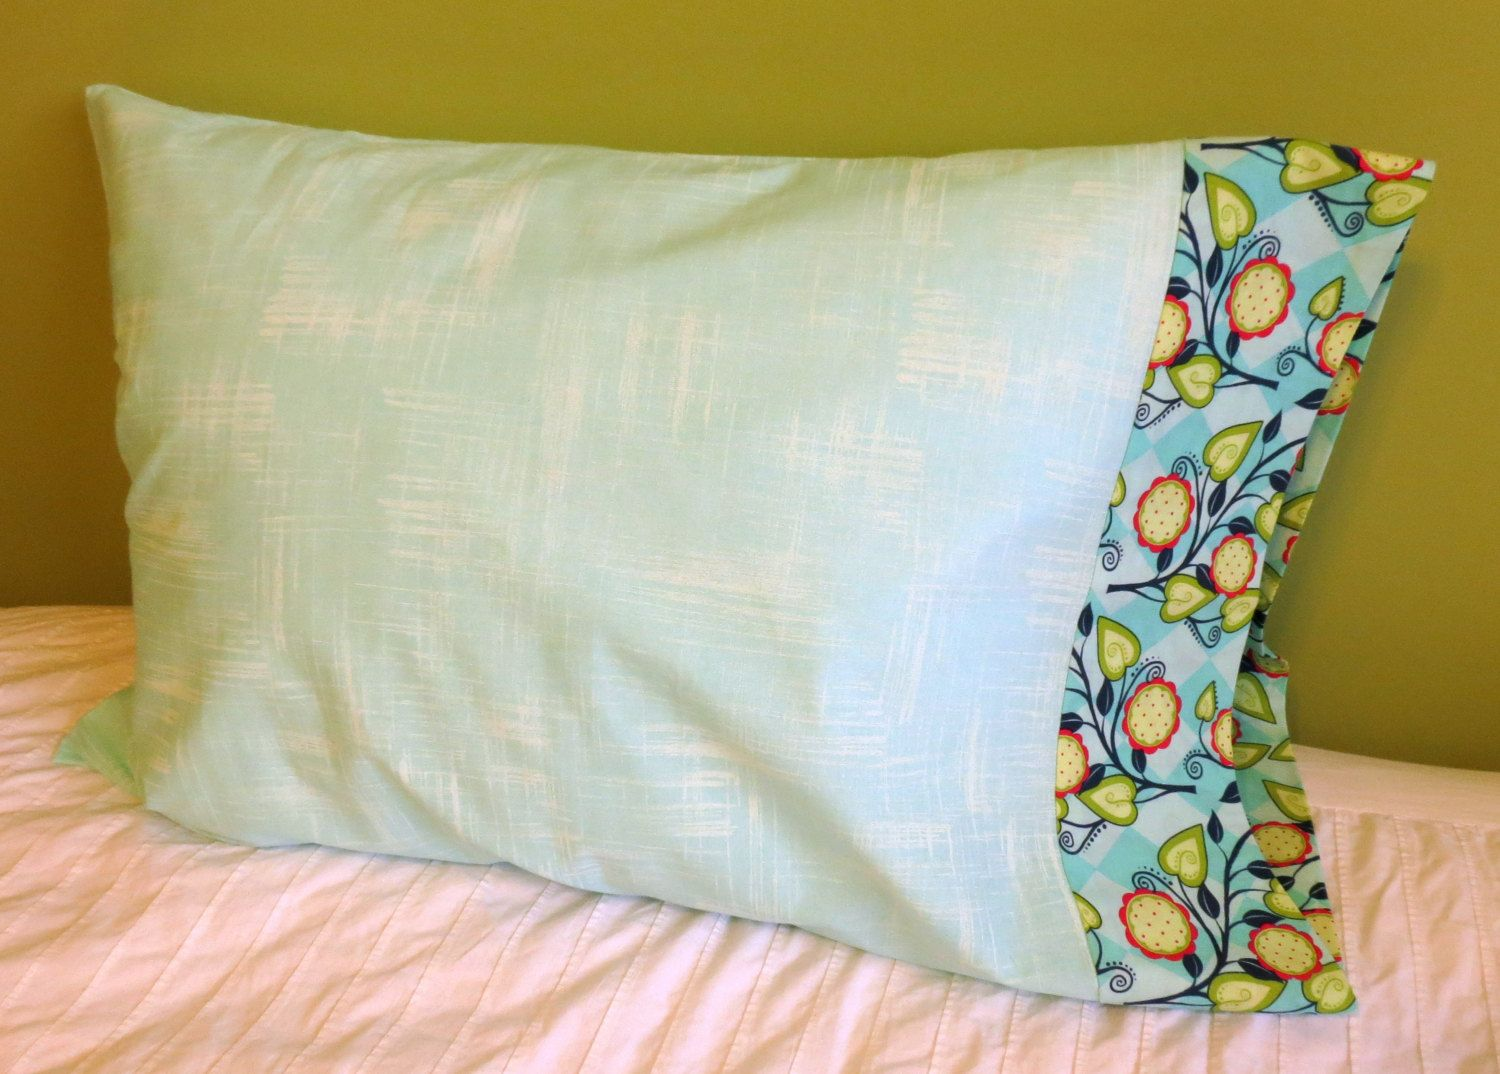 Teal pillowcase - handmade, housewarming gift, bedding, guest room decor, dorm room bedding, pillow case, French seam pillowcase, argyle by BridgeTheGapStudio on Etsy